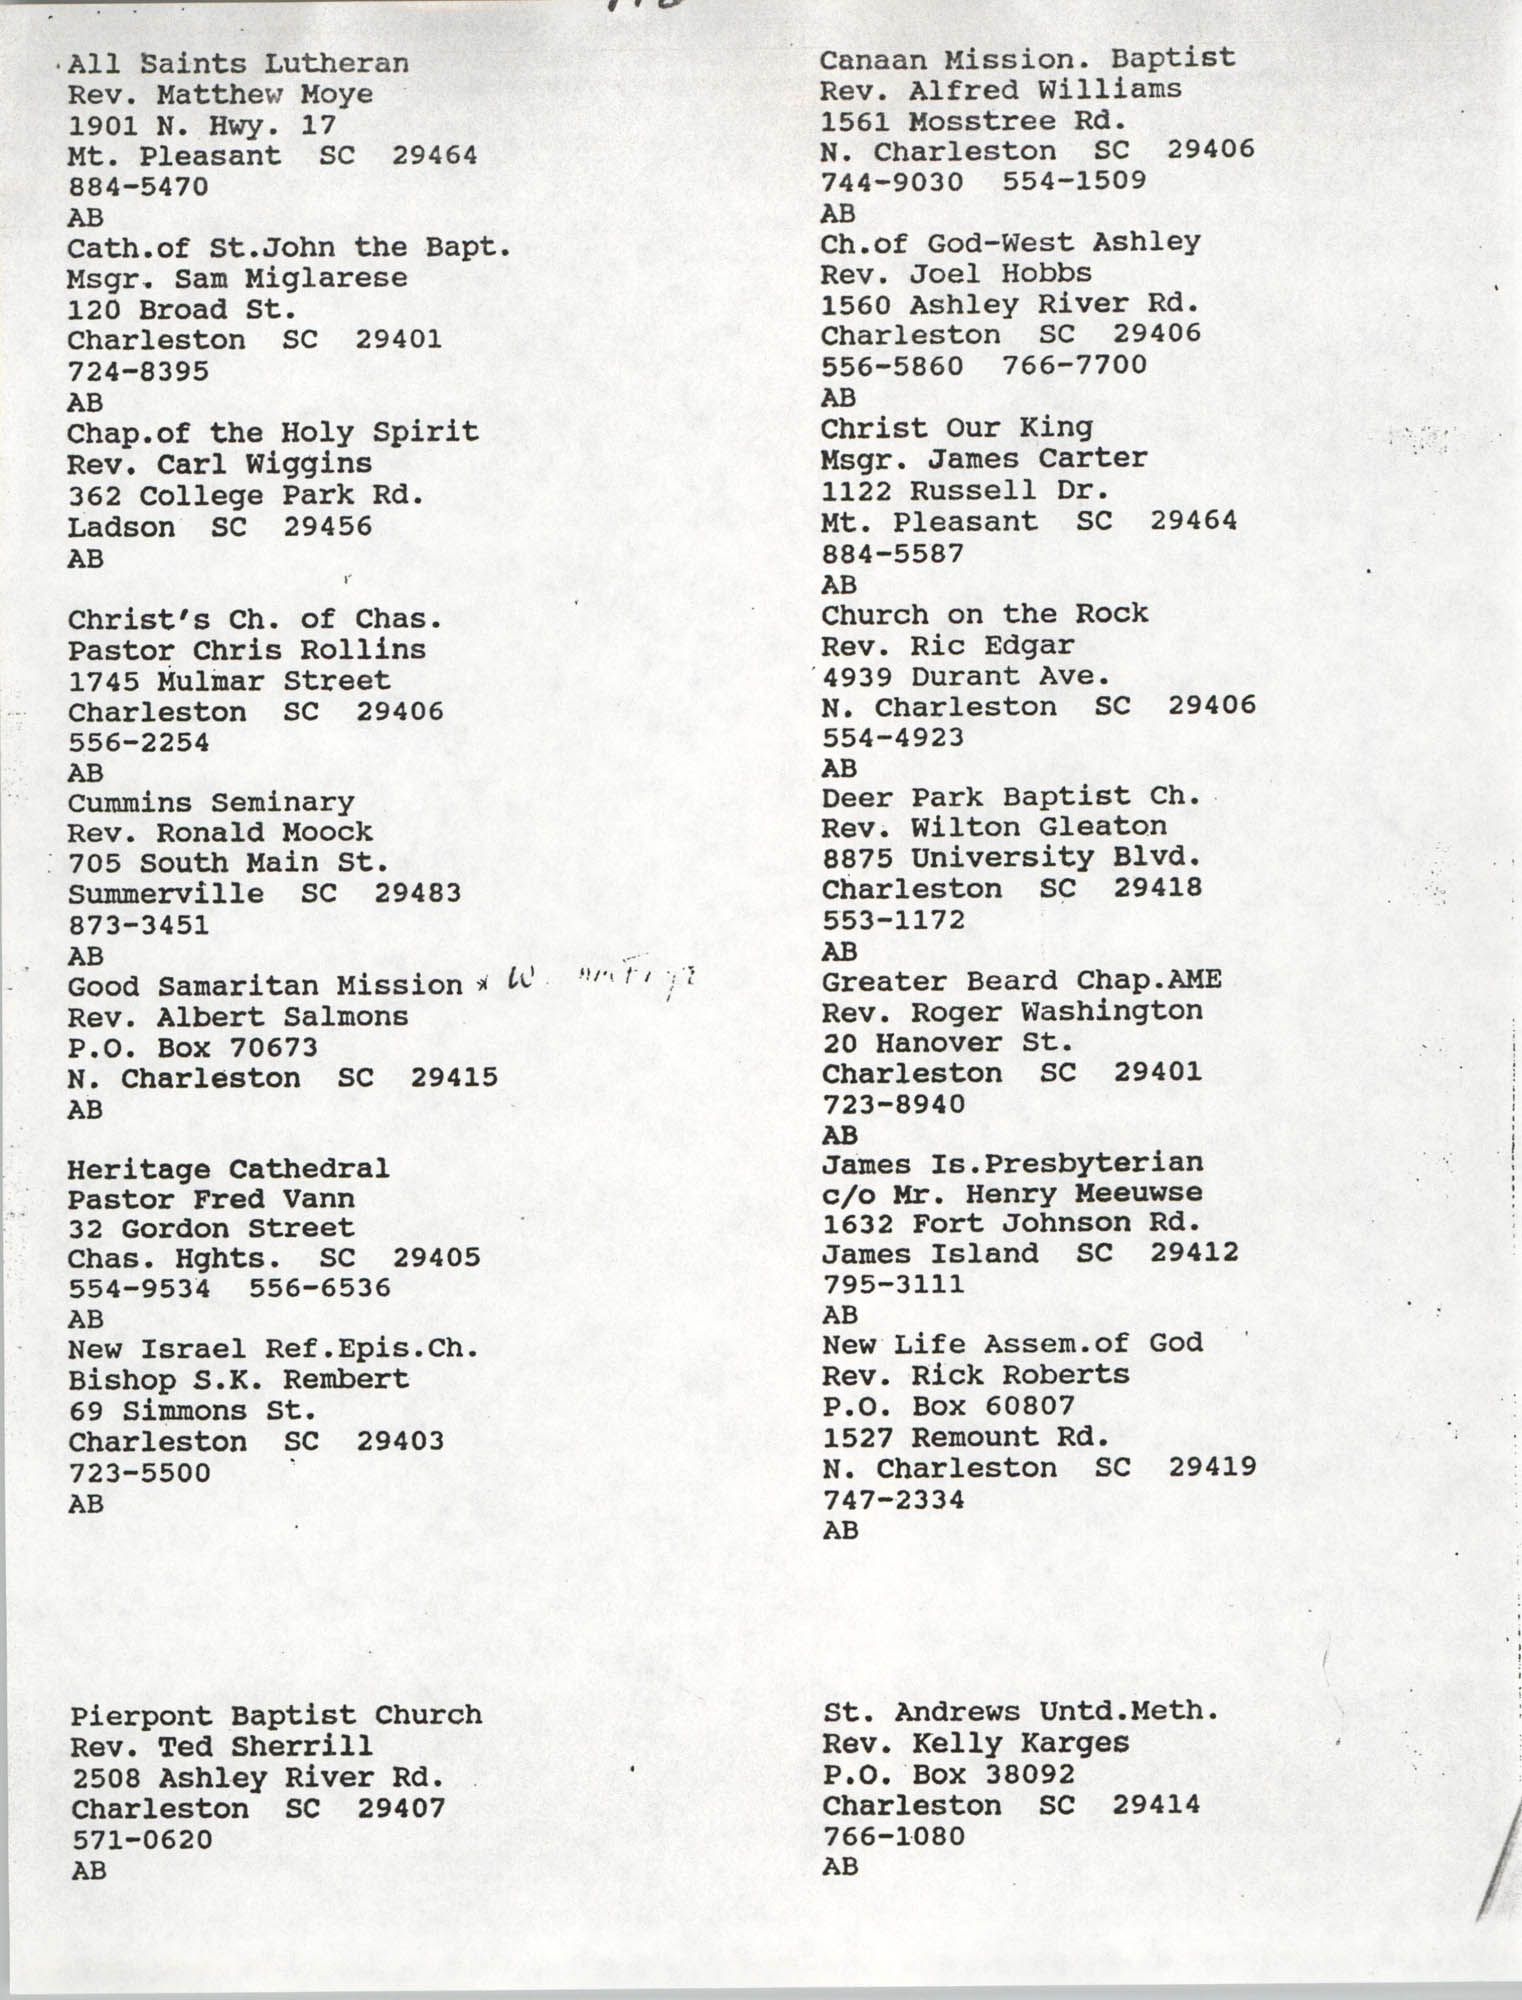 Church Contact List, Charleston Chapter of the NAACP, Page 5